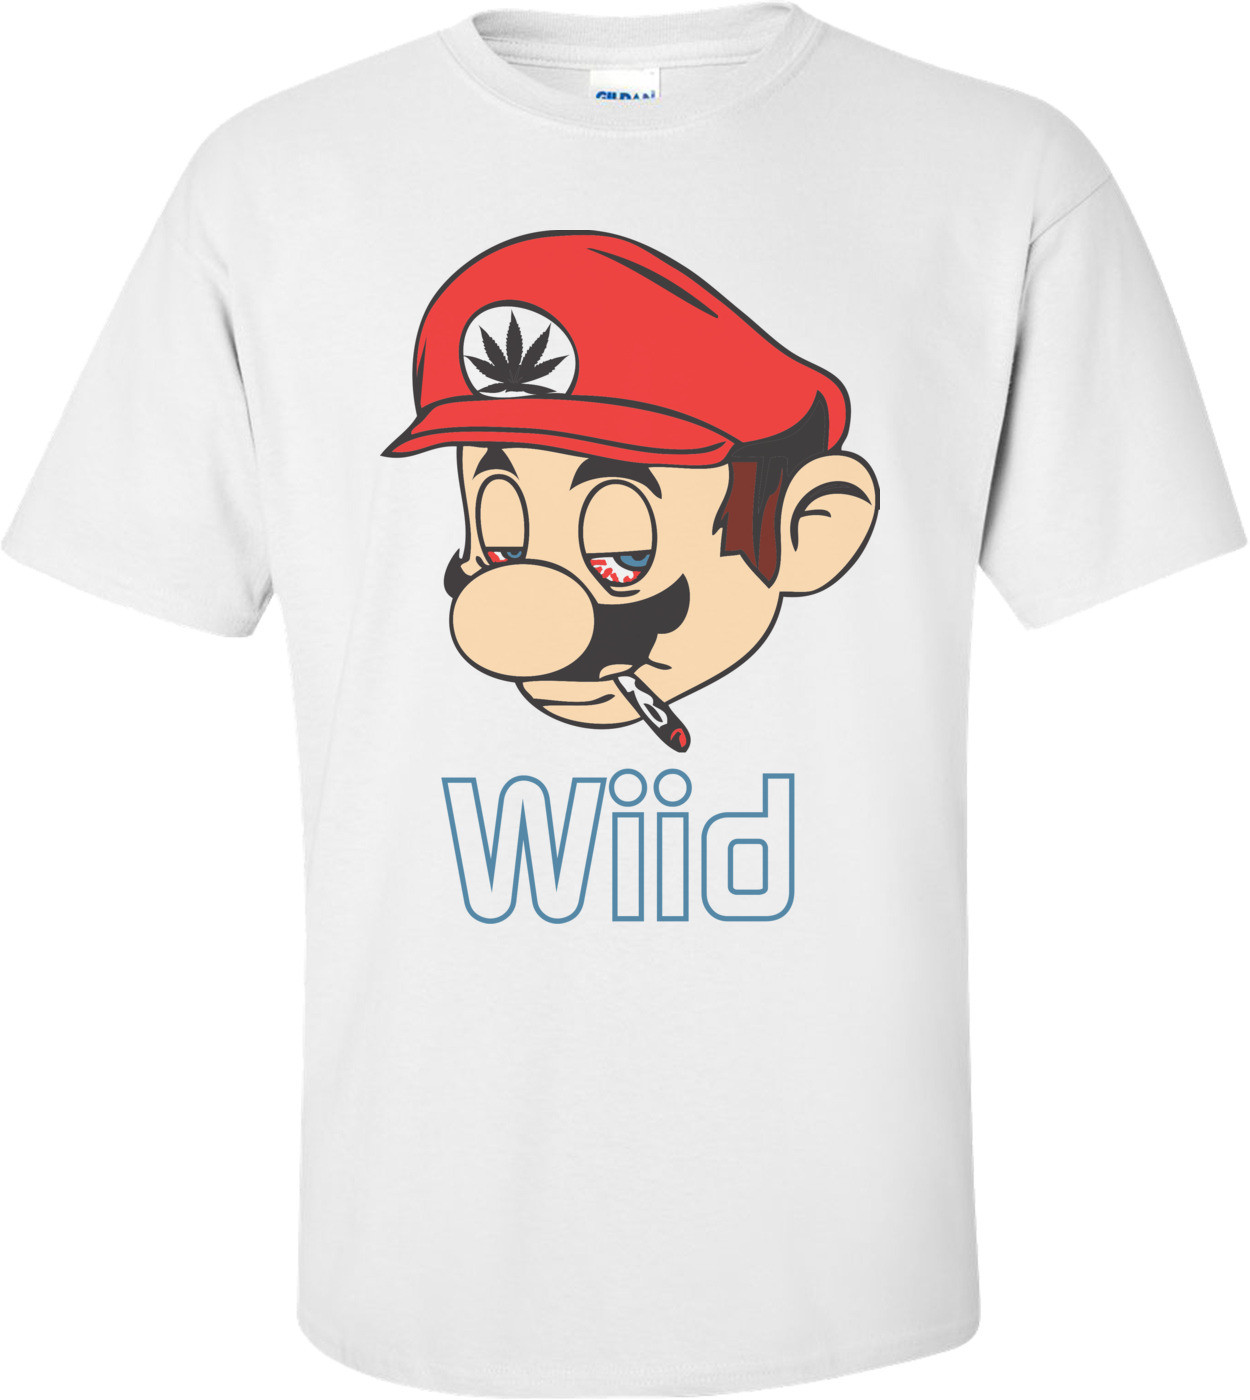 Wiid - High Mario T-shirt